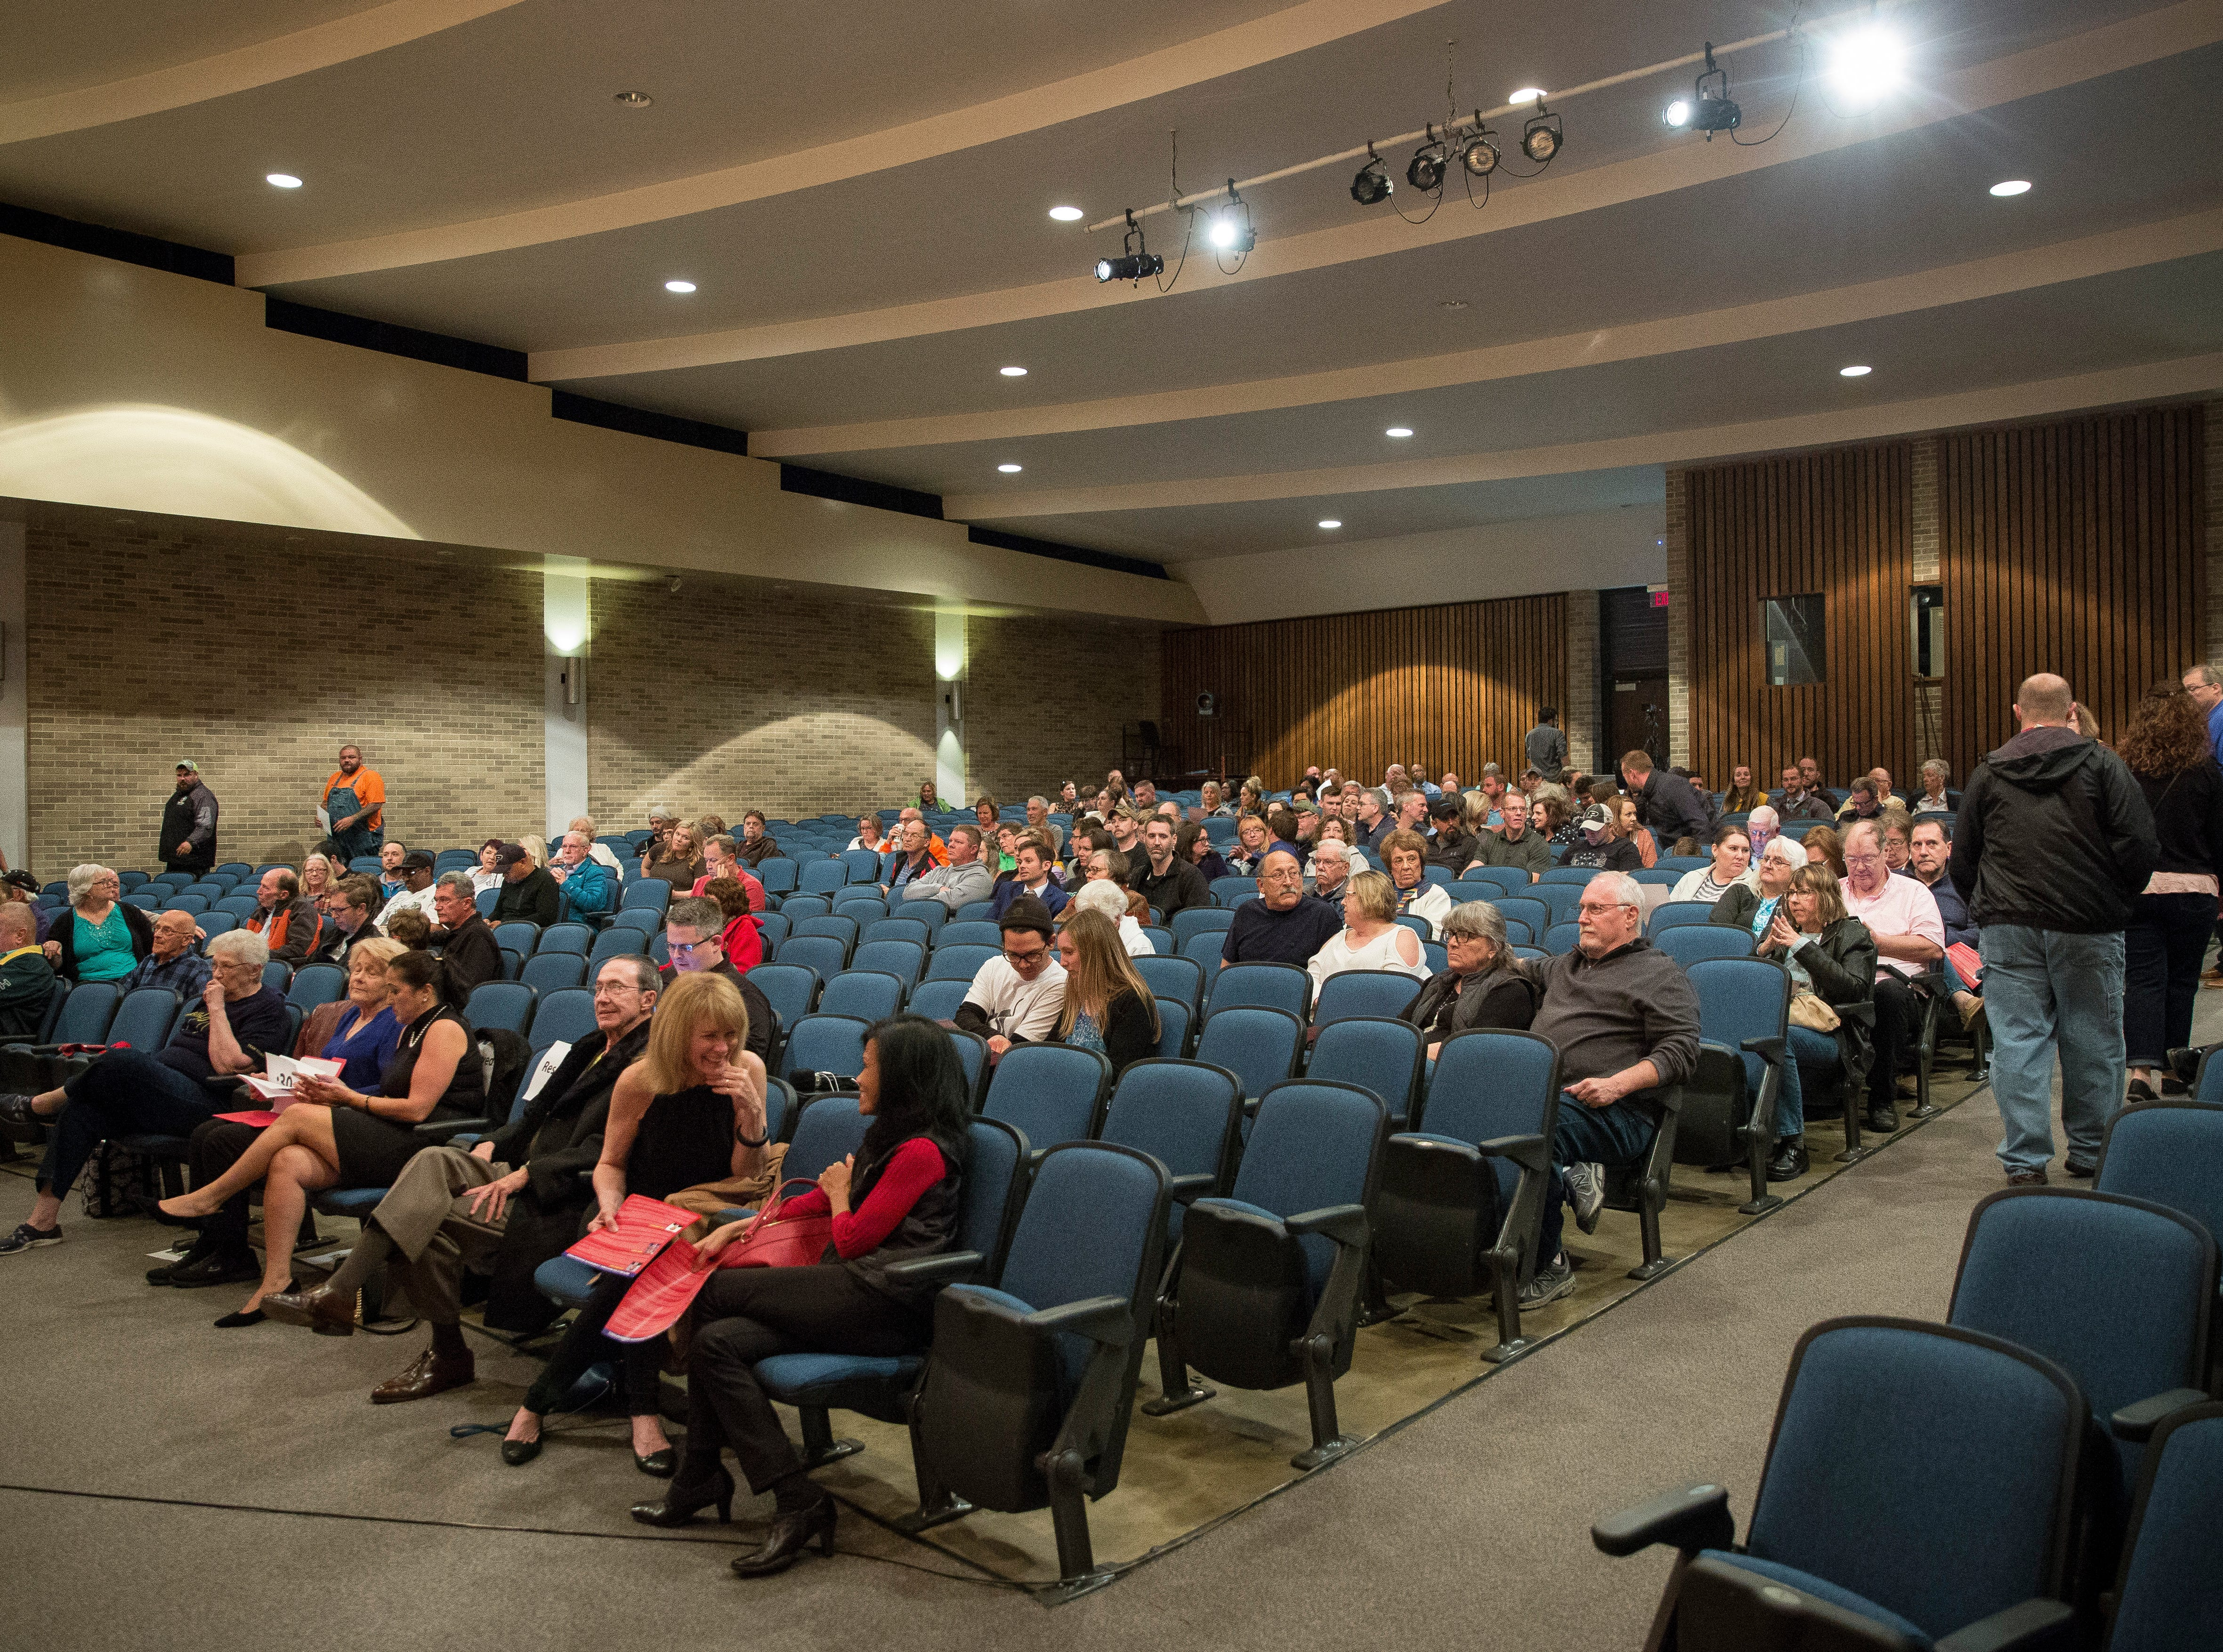 The crowd begins to fill in prior to the start of the Republican mayoral debate on April 23 at Northside Middle School. The primary is on May 7.